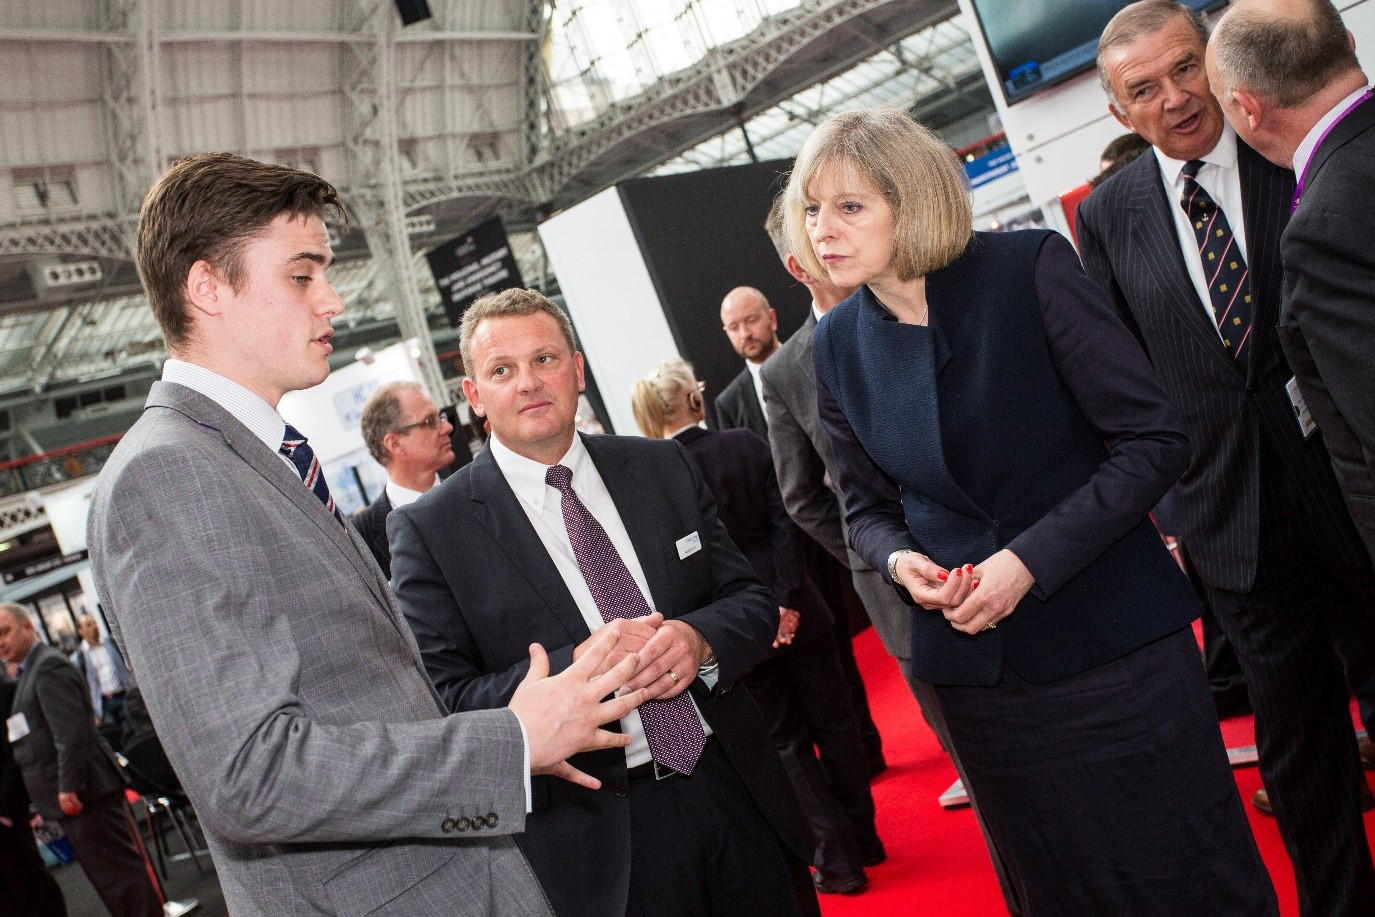 Head of Perception Cyber Security, Dan Driver, meets the new Prime Minister Theresa May at an event in 2014, while she was Home Secretary